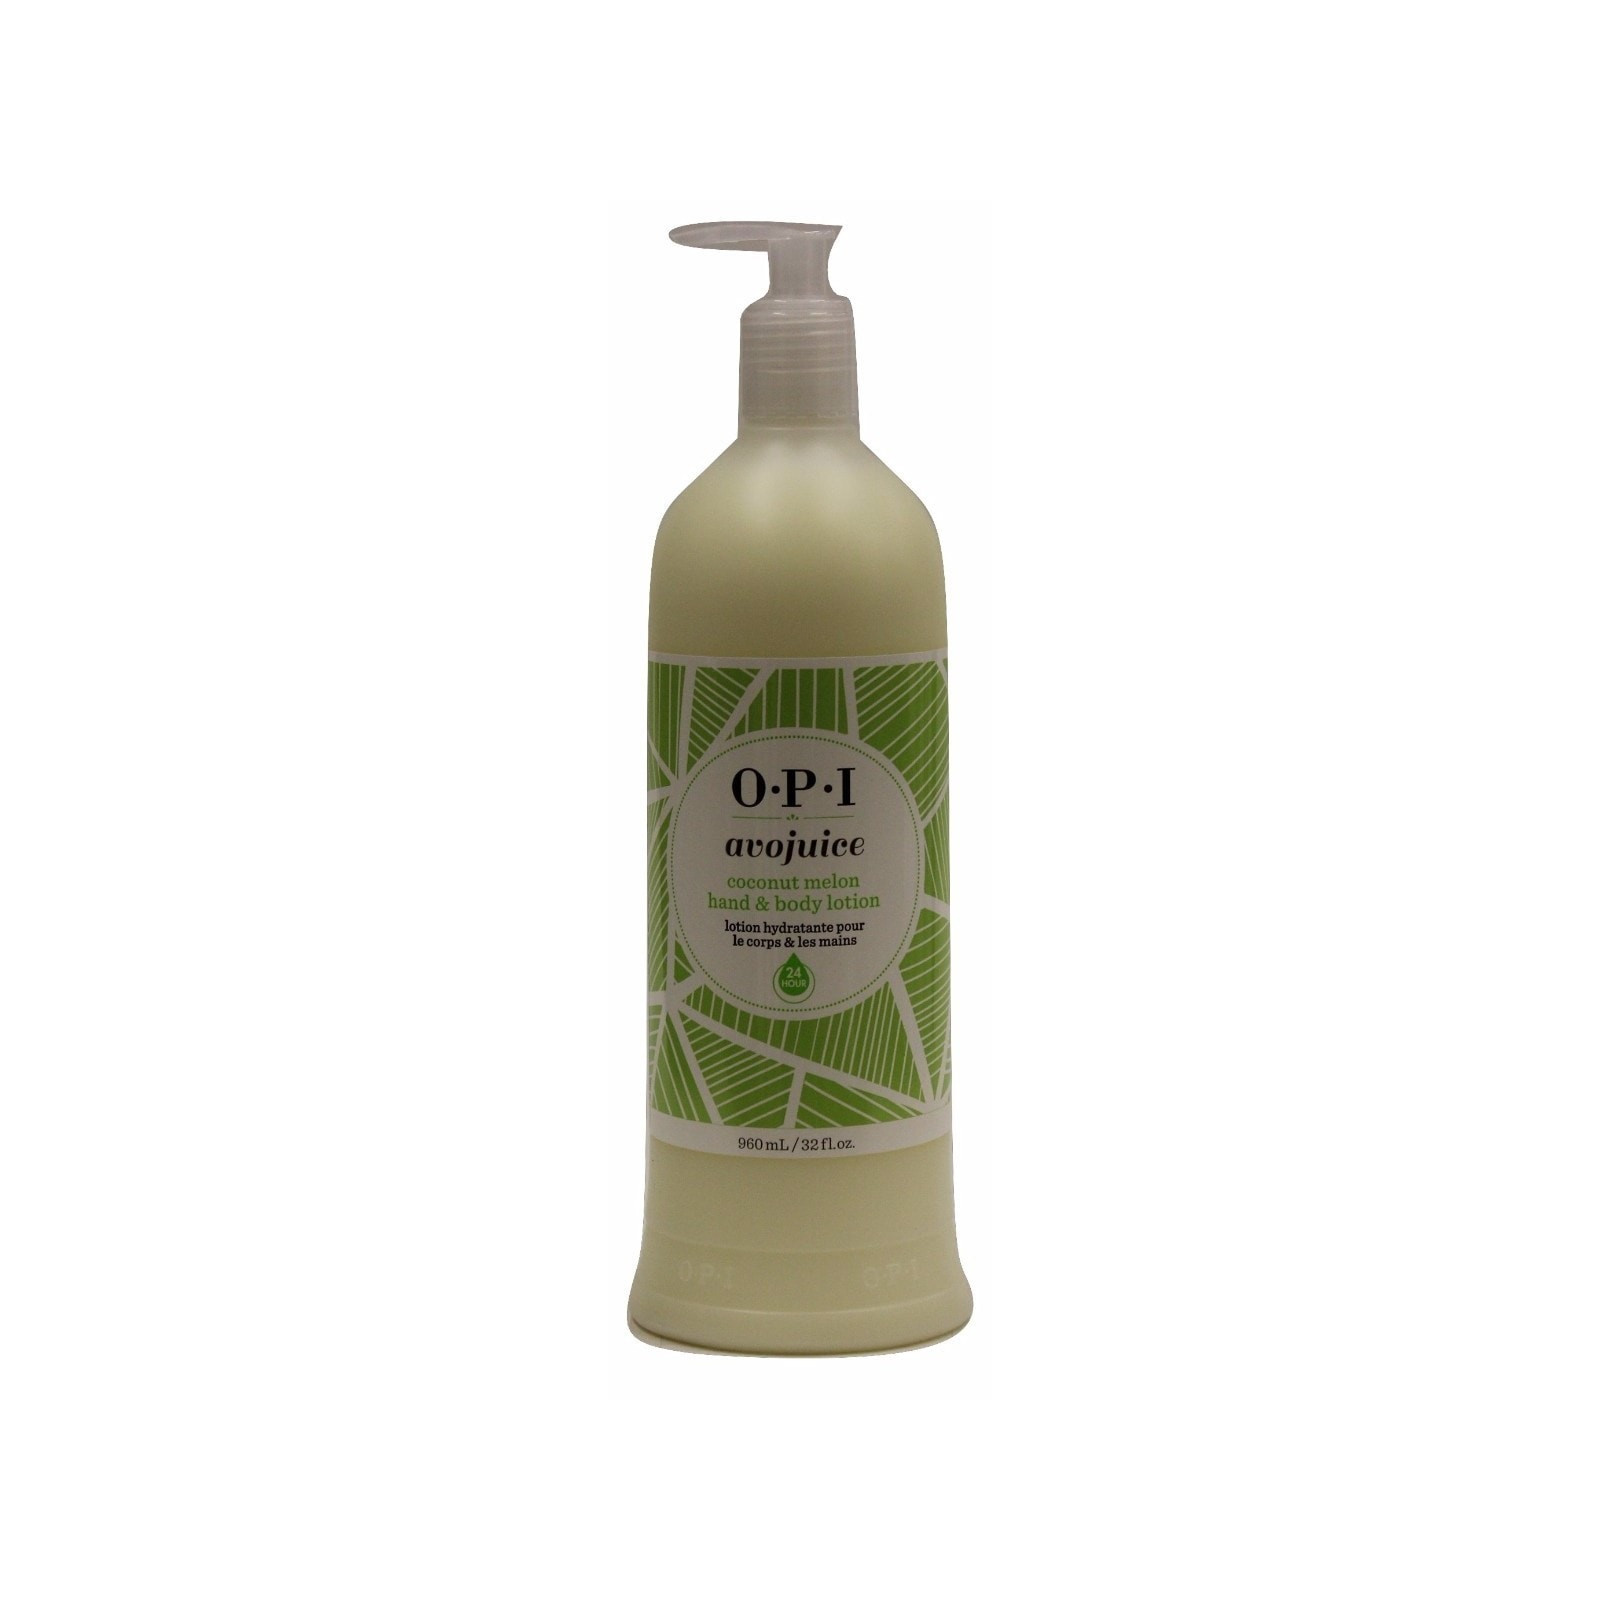 OPI Avojuice Coconut Melon 32-ounce Hand & Body Lotion (3...